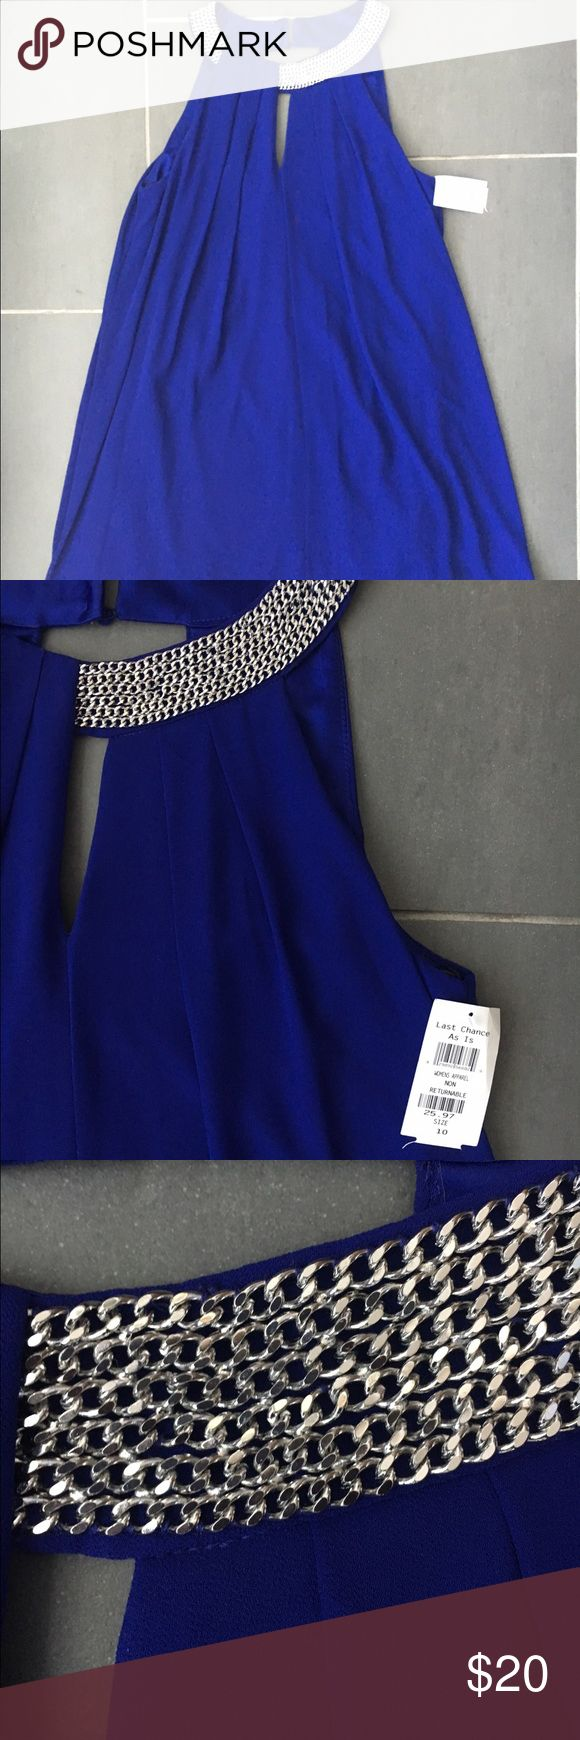 Size 10 Blue Flowy dress Beautiful key hole neckline with a chain detail. This dress floats away from the body. Never worn and purchased a Nordstrom discount store. One of the loops is broken on the neck (pictured). Other than that it is in perfect condition! Dresses Mini